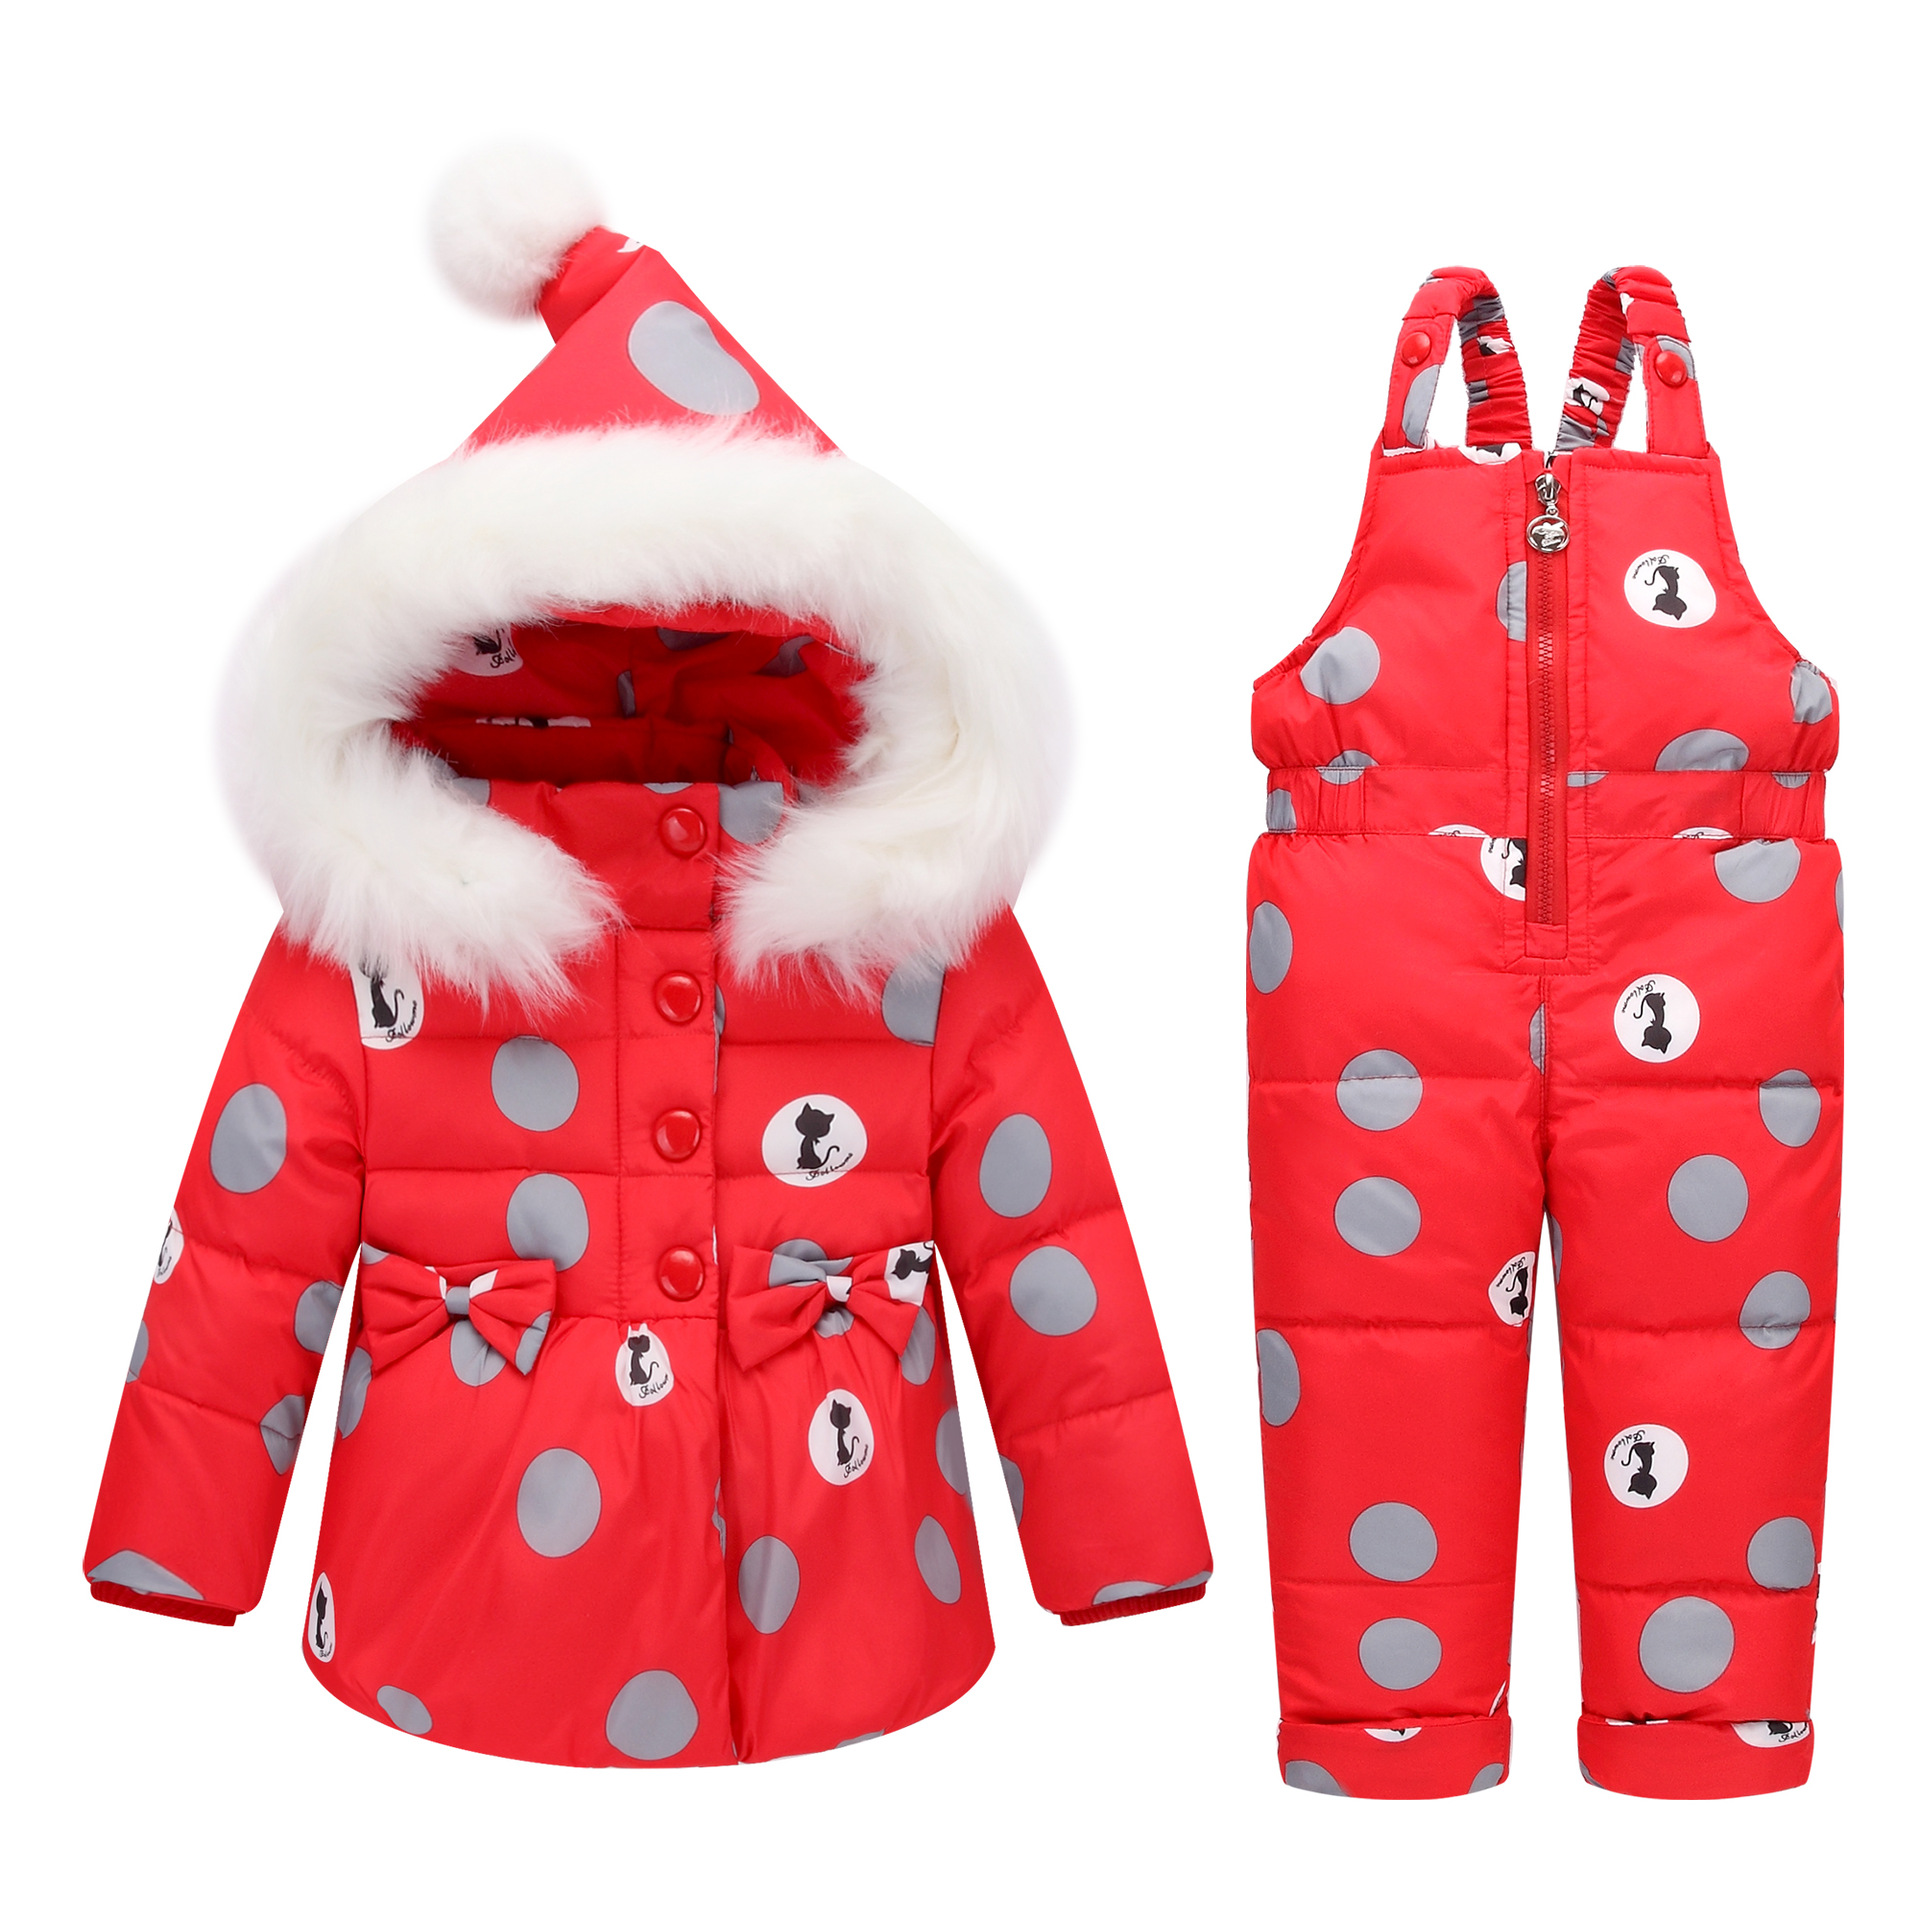 Children Clothing Sets Girls Winter Hooded Duck Down Jacket + Trousers Waterproof Snowsuit Warm Kids Baby ClothesÎäåæäà è àêñåññóàðû<br><br>